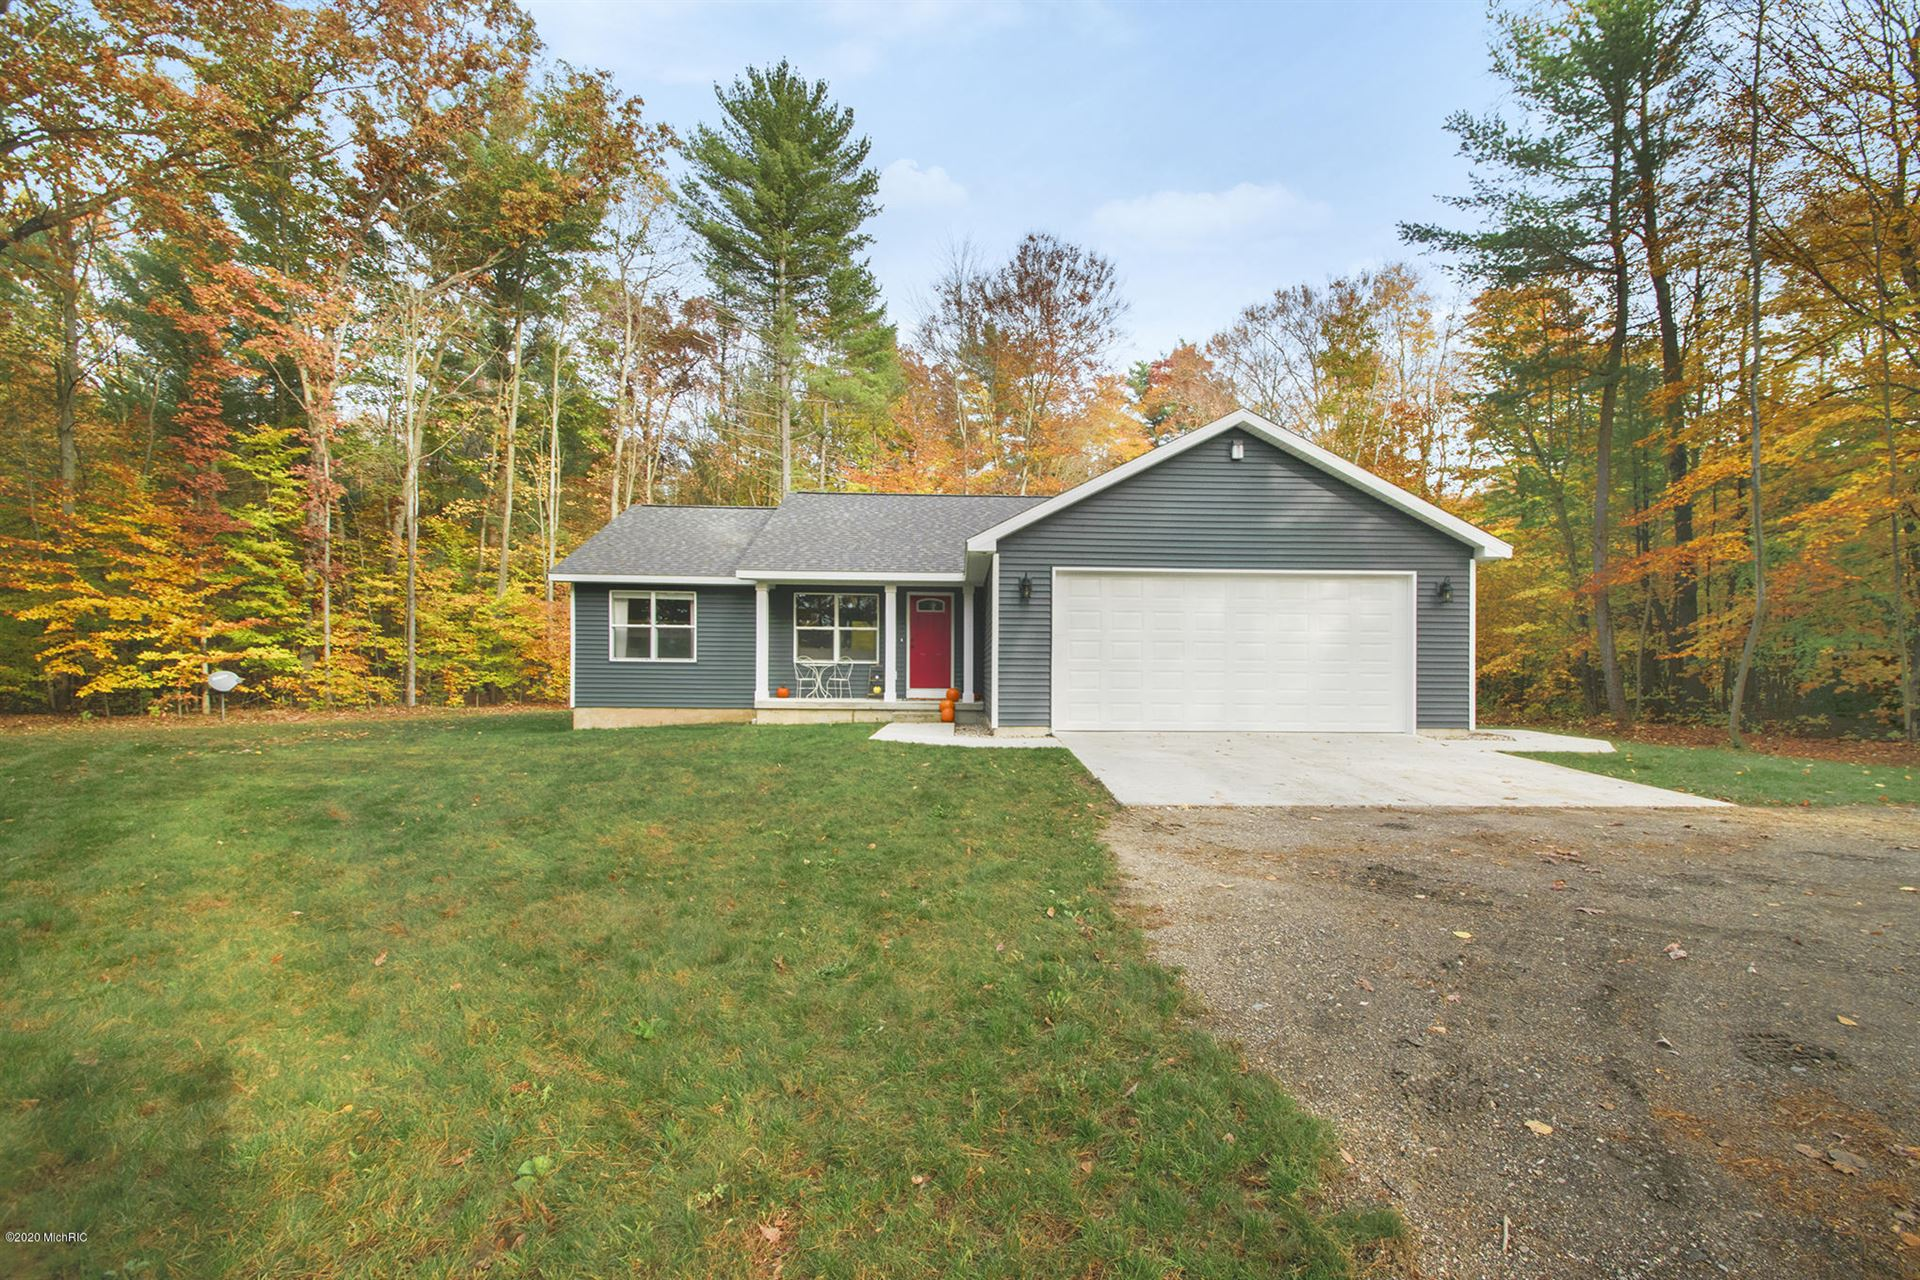 5656 Amy School Road, Pierson, MI 49329 - MLS#: 20044322